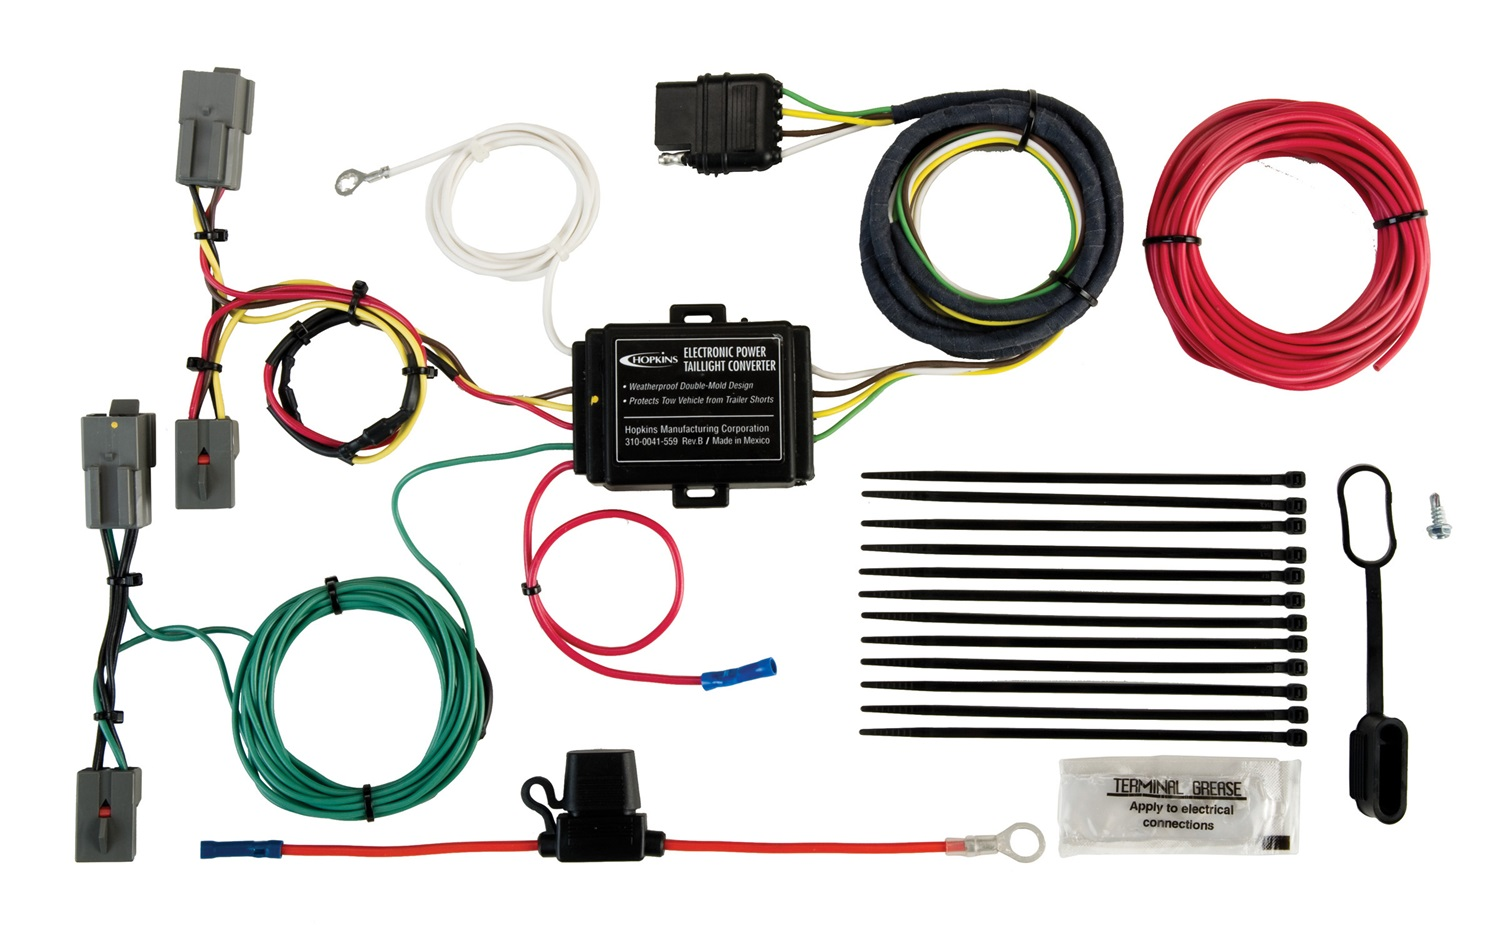 hopkins towing solution 11140504 plug in simple vehicle to trailer wiring harness incl short proof power converter trailer wiring harness plug in [ 1500 x 925 Pixel ]